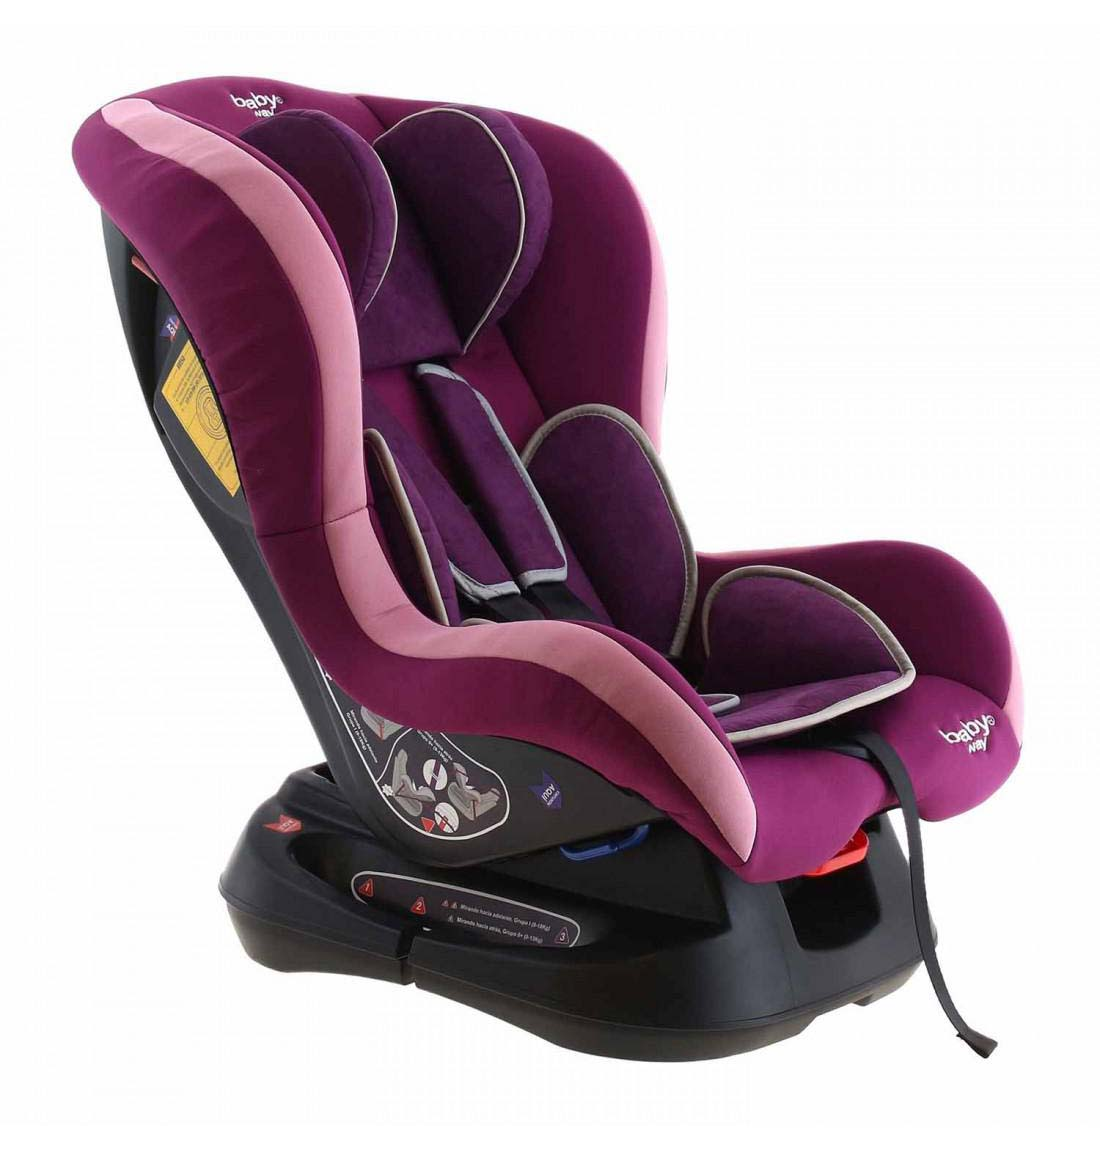 Butaca De Auto Baby Way Reclinable Morado Bw-737M19